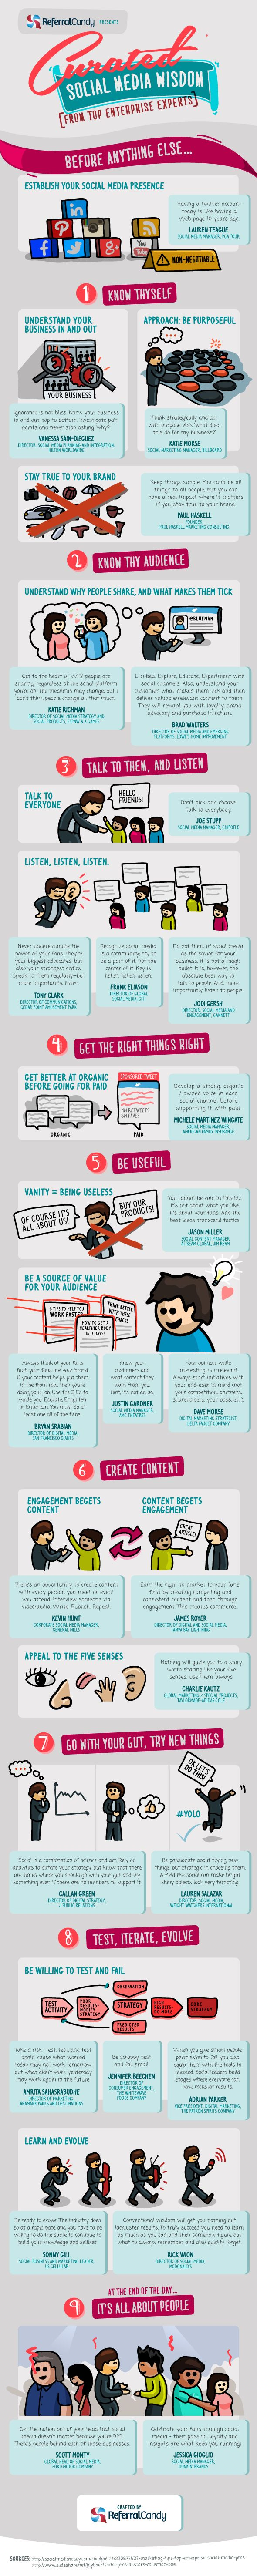 Curated Social Media Wisdom From Top Enterprise Experts  #SocialMedia #business #marketing  #infographic